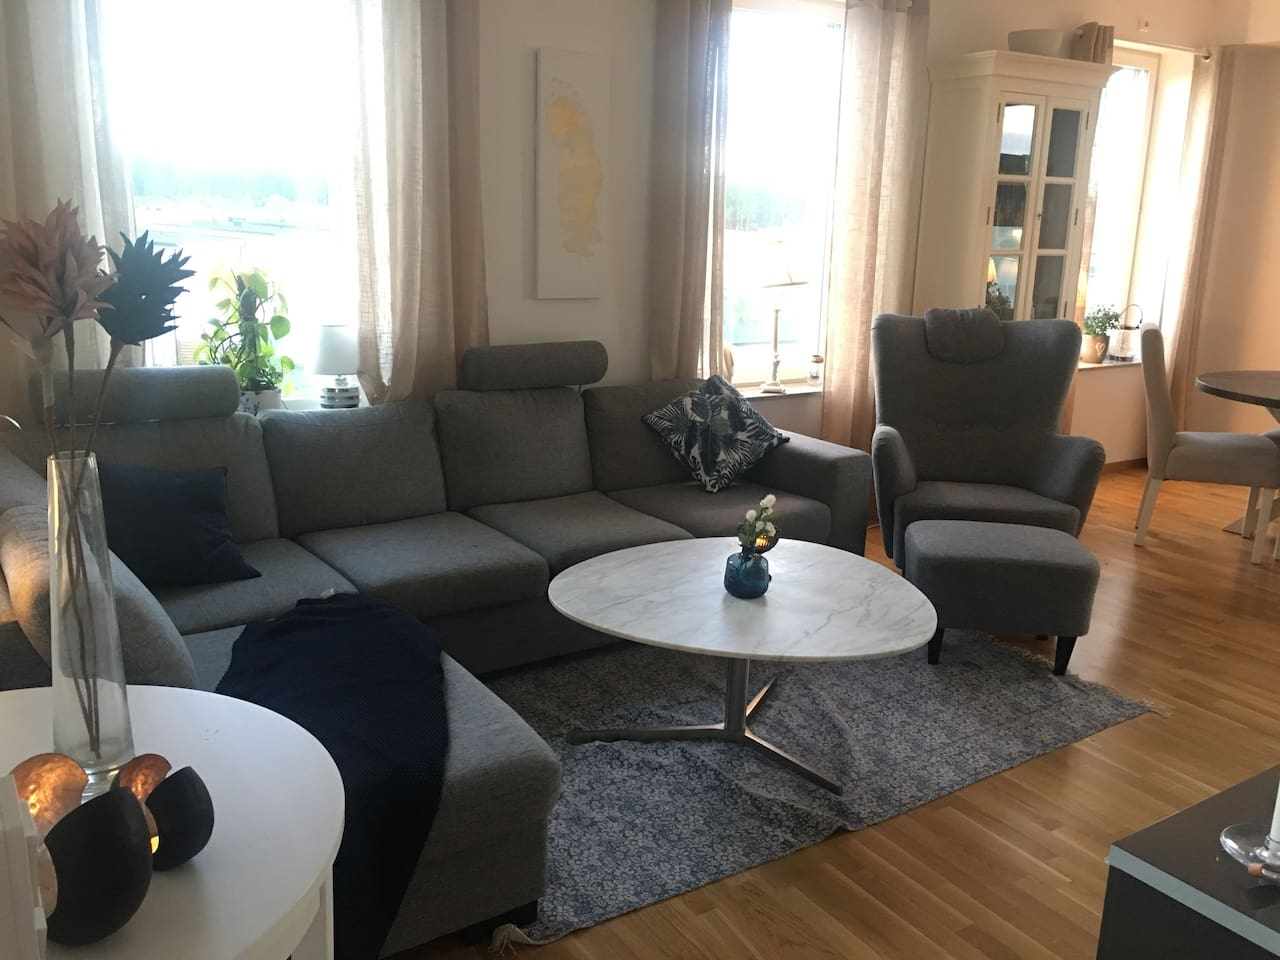 Bright apartment in Uppsala with big glass balcony